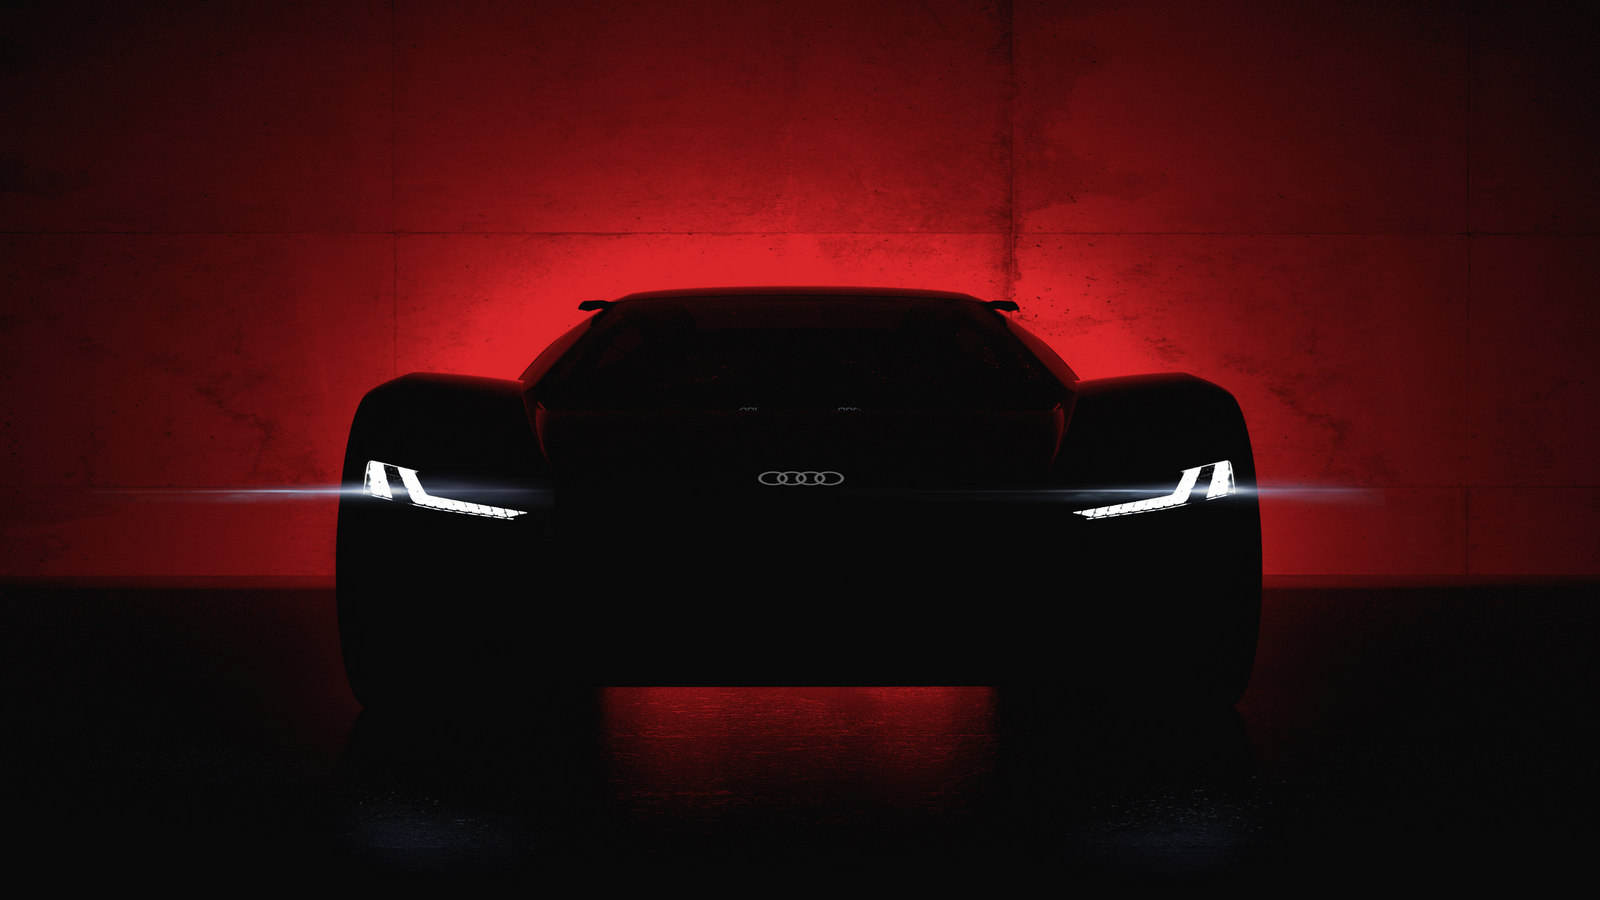 Audi showed a new supercar in the first image